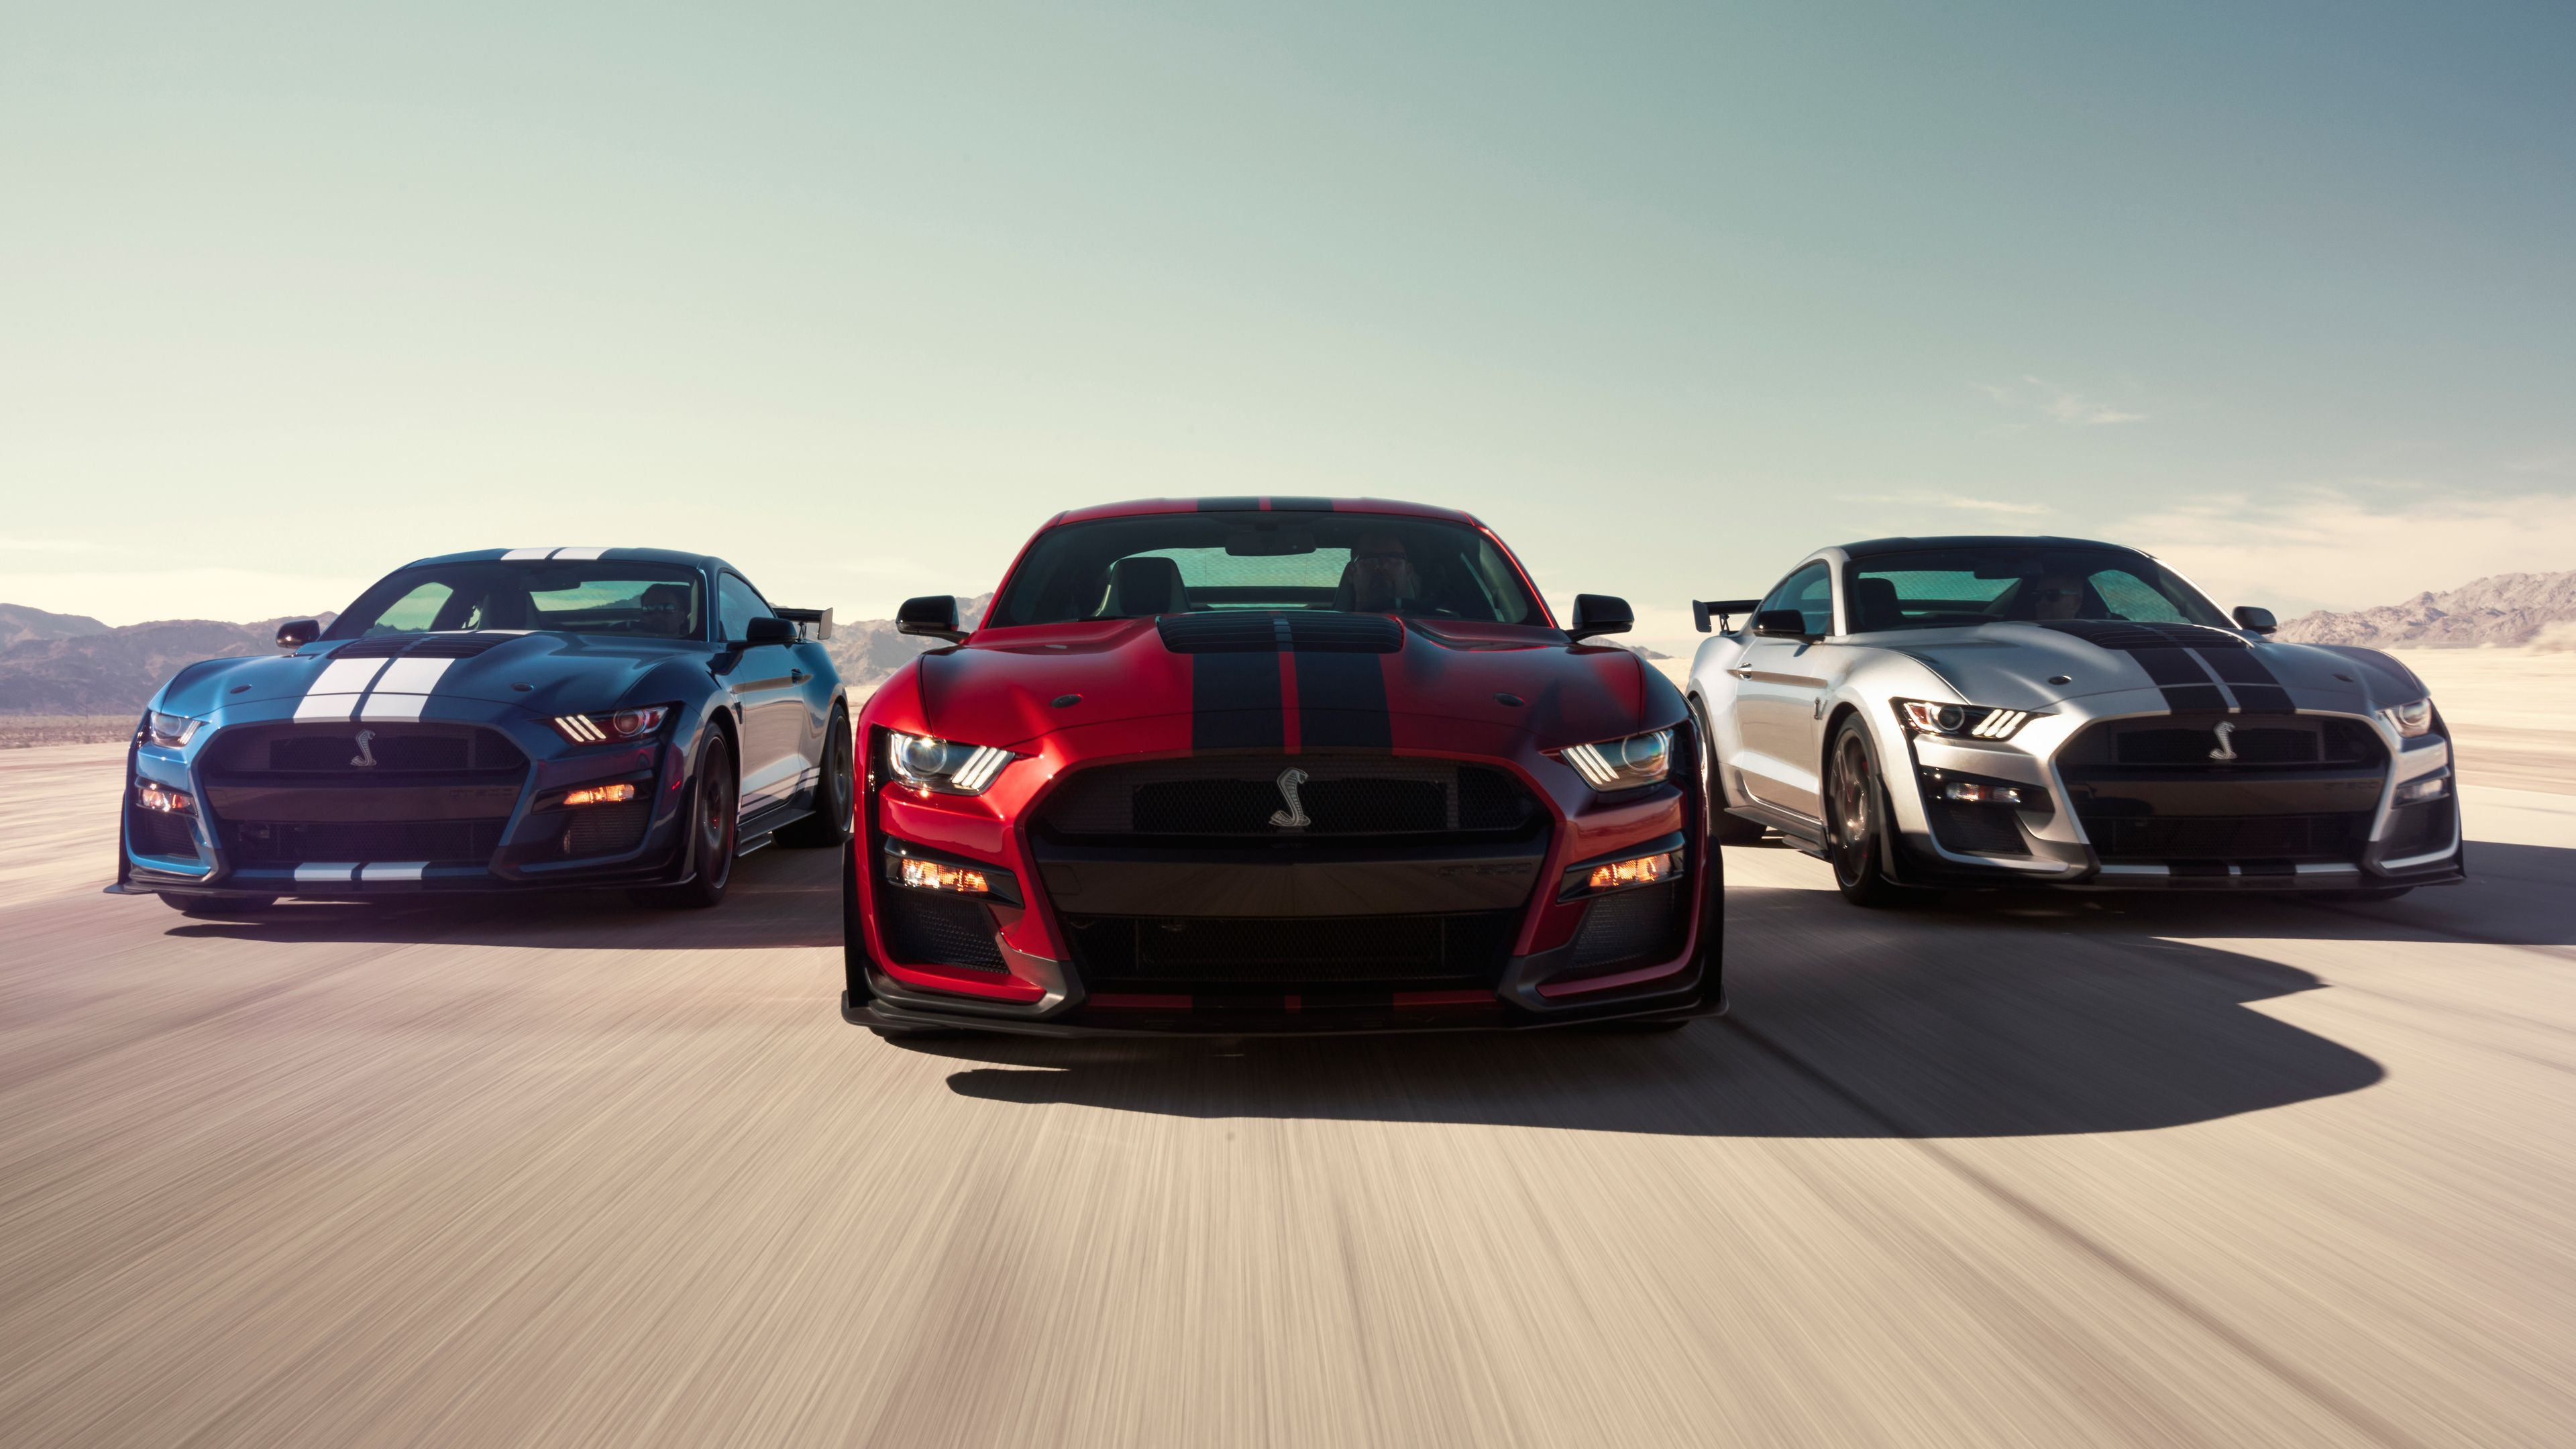 2020 Ford Mustang Shelby GT500 4k shelby wallpapers, hd